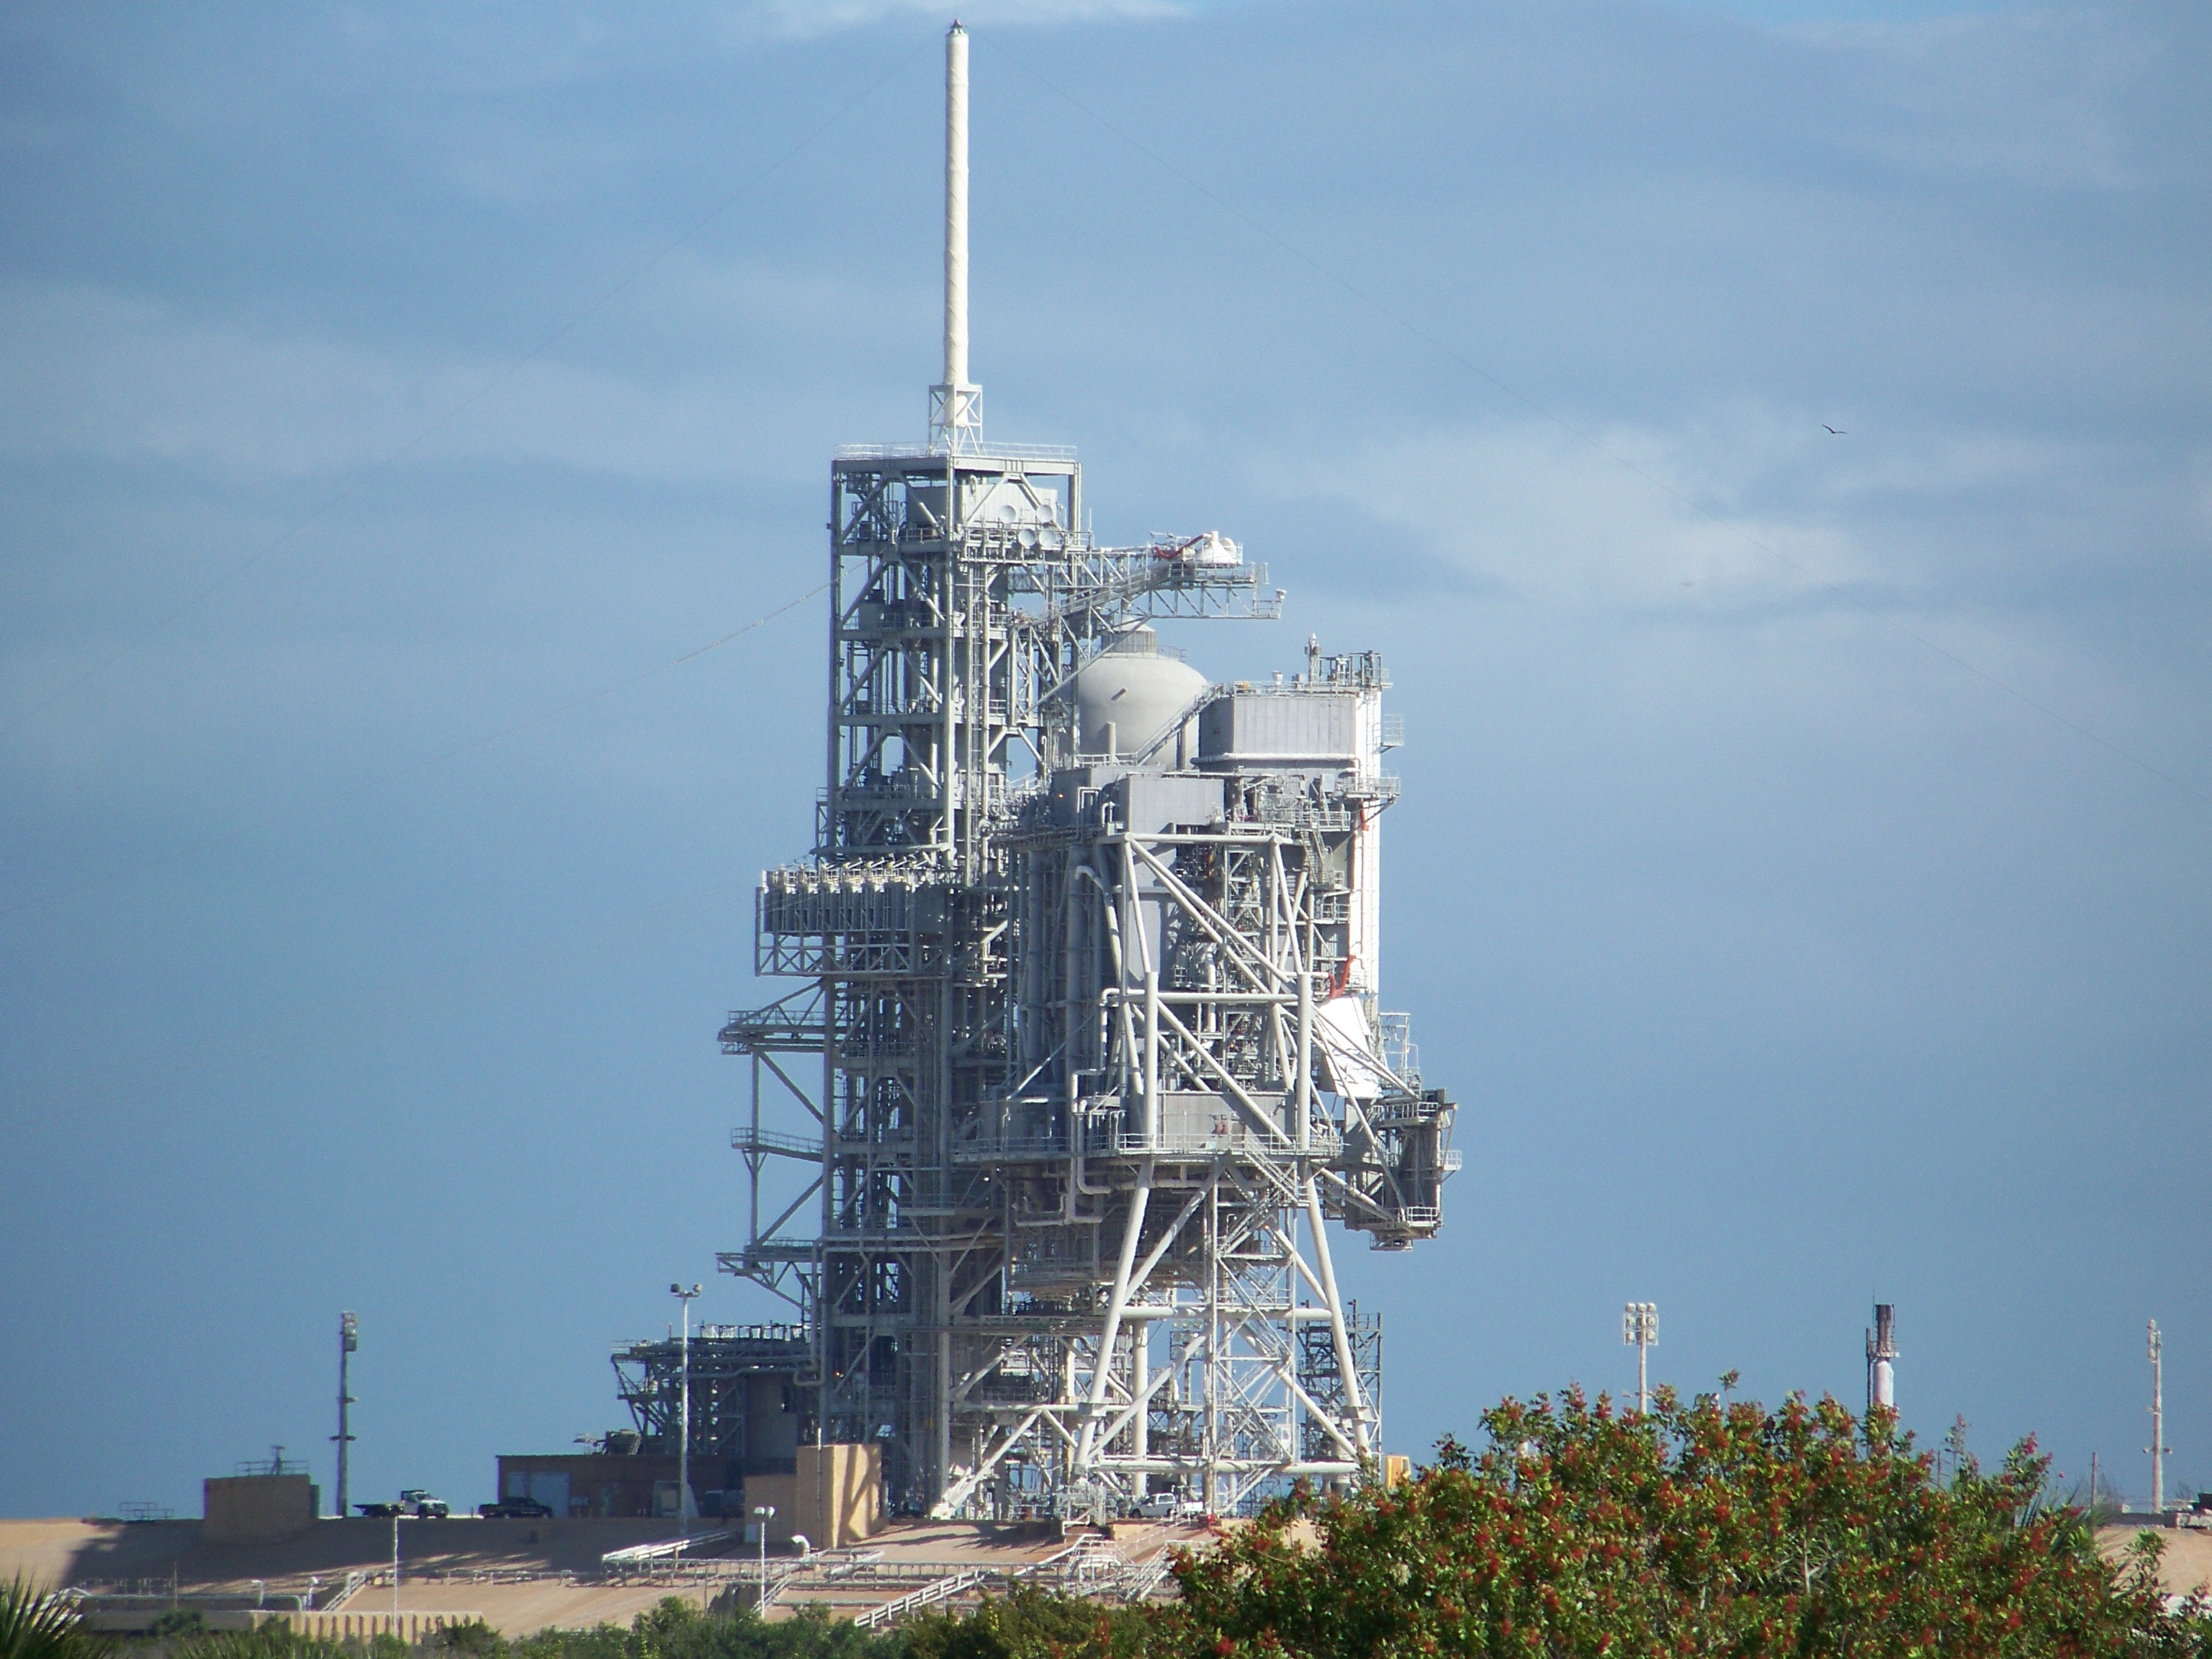 spacex florida - photo #3